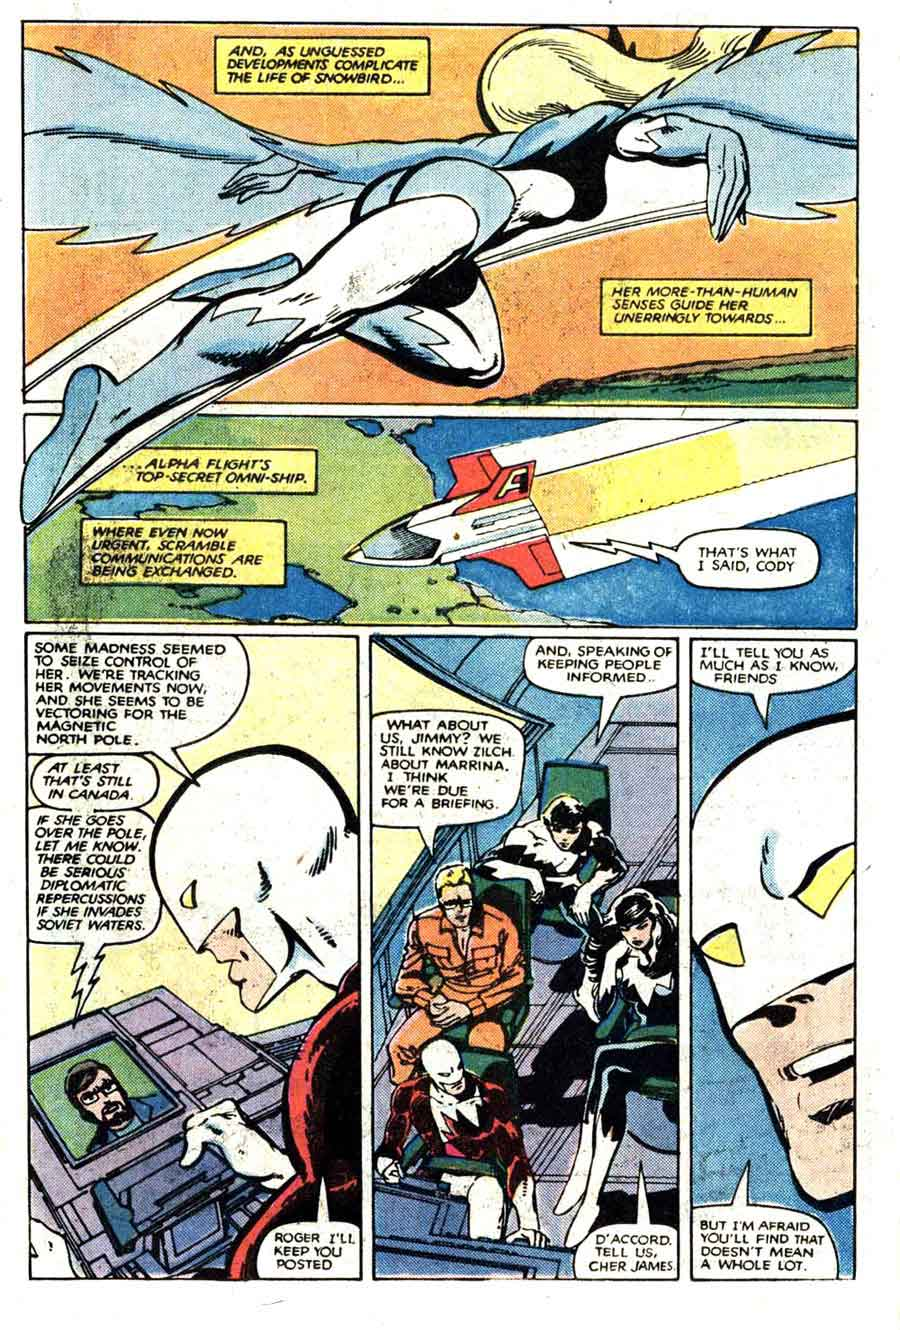 Alpha Flight v1 #2 marvel comic book page art by John Byrne